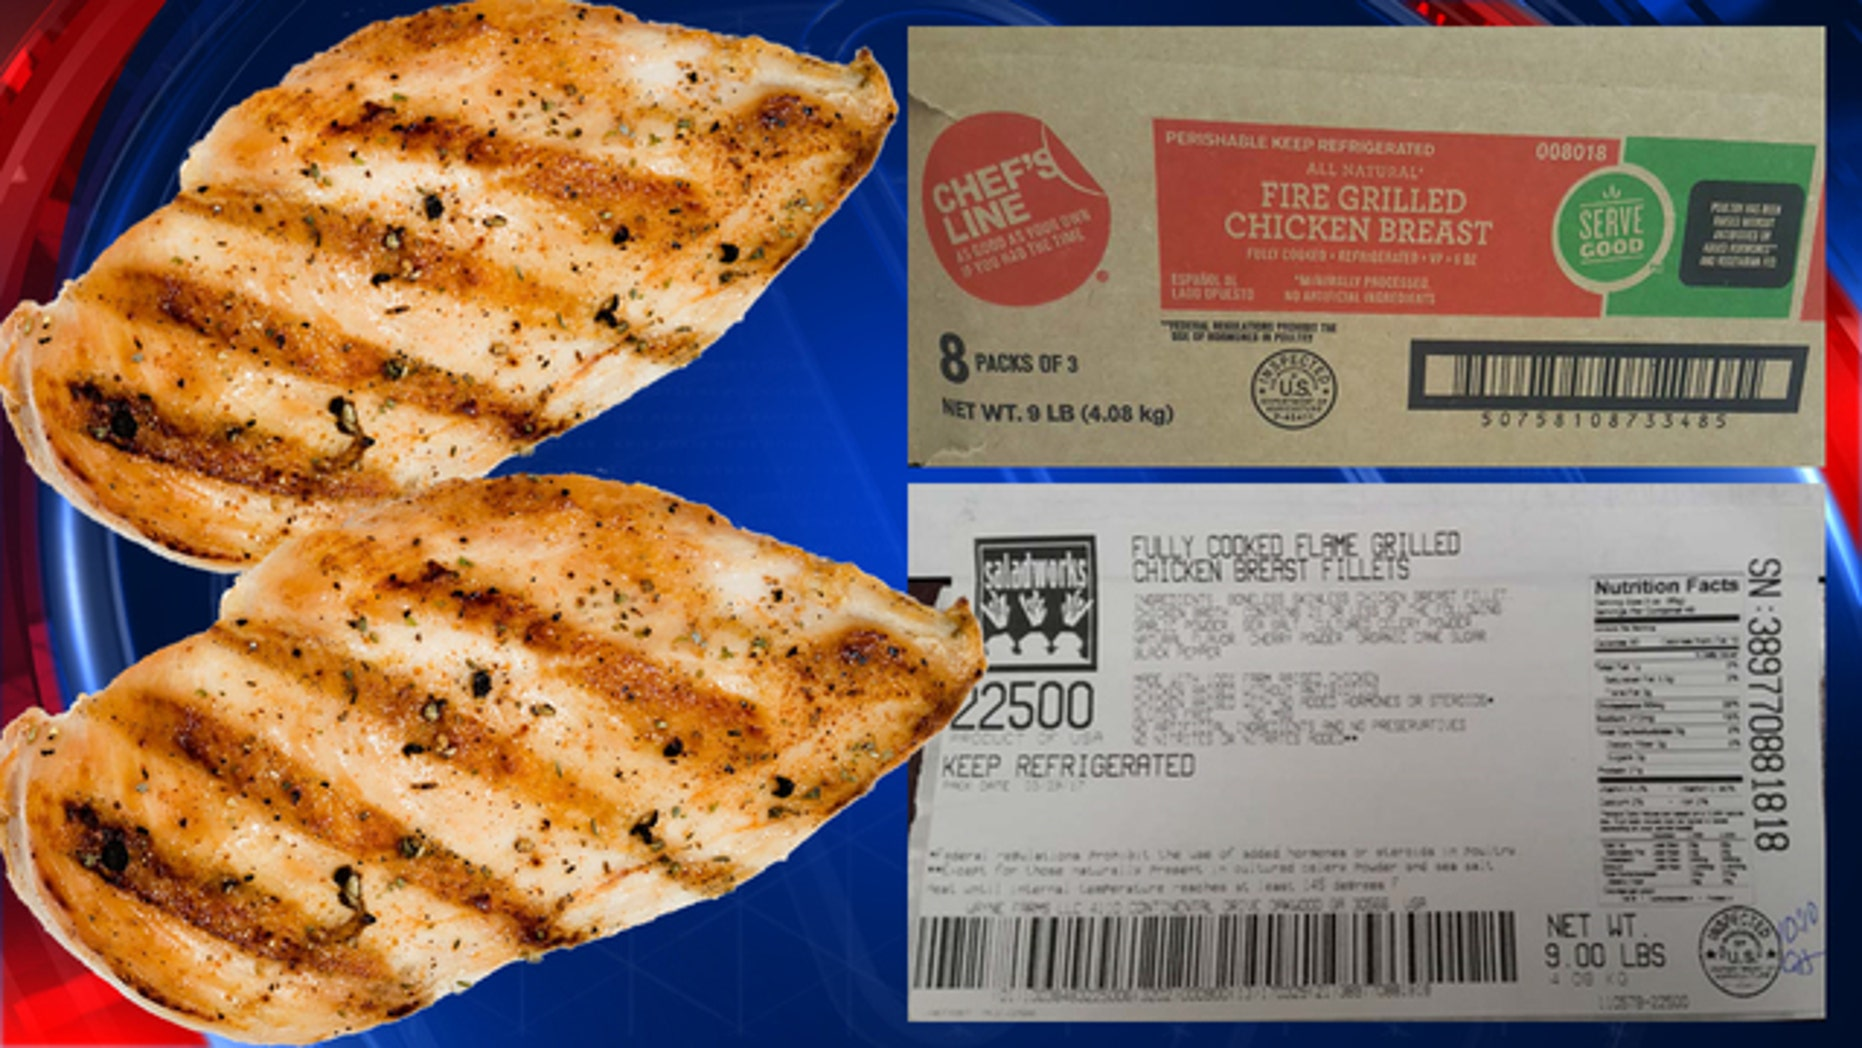 The ready-to-eat grilled chicken breast items were produced on March 29, 2017 and April 7, 2017.